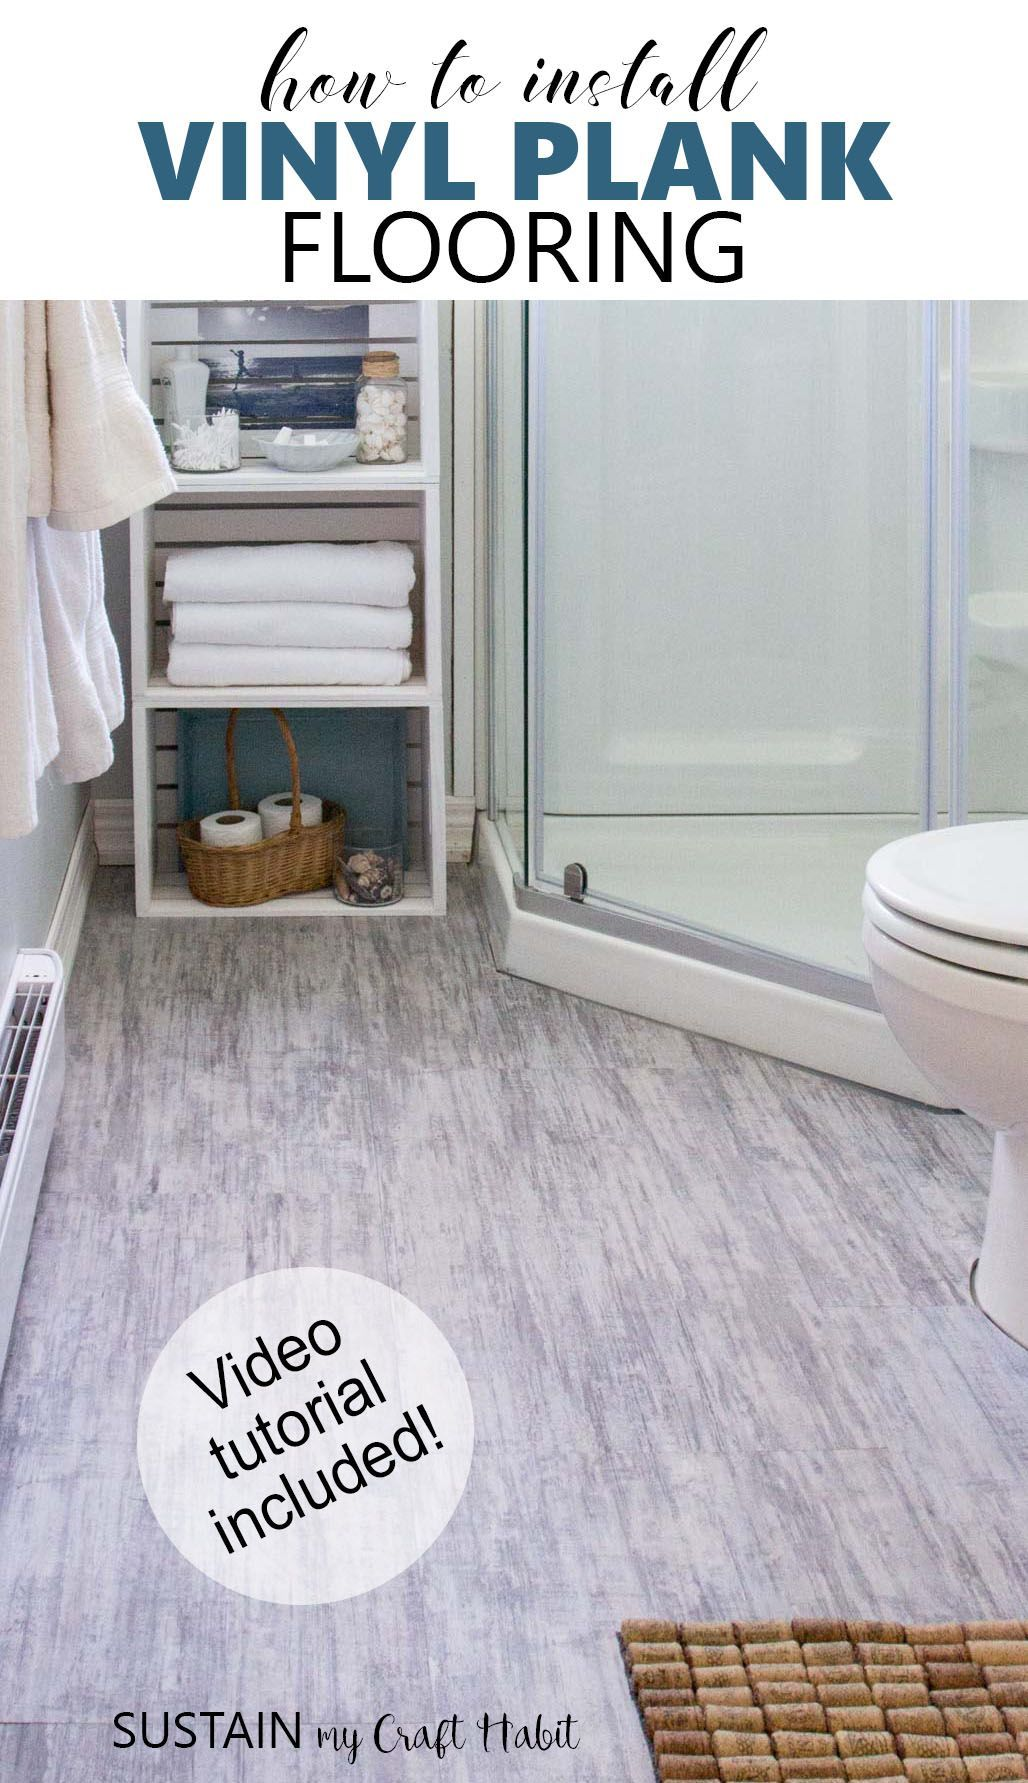 Learn how to install vinyl plank flooring with step-by-step video ...